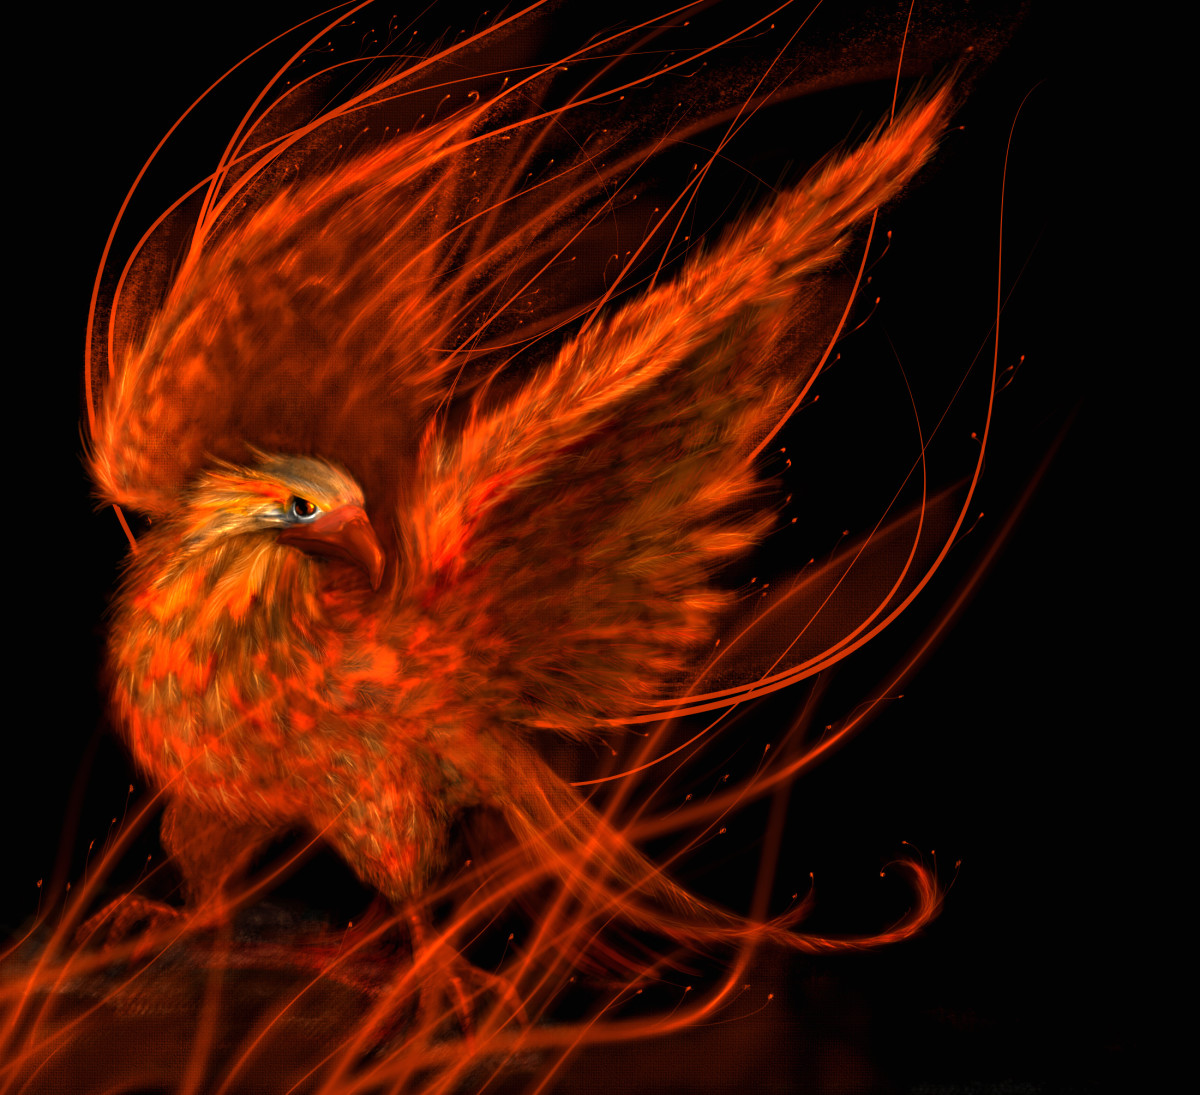 Persian Mythology 's version of the phoenix - the Huma